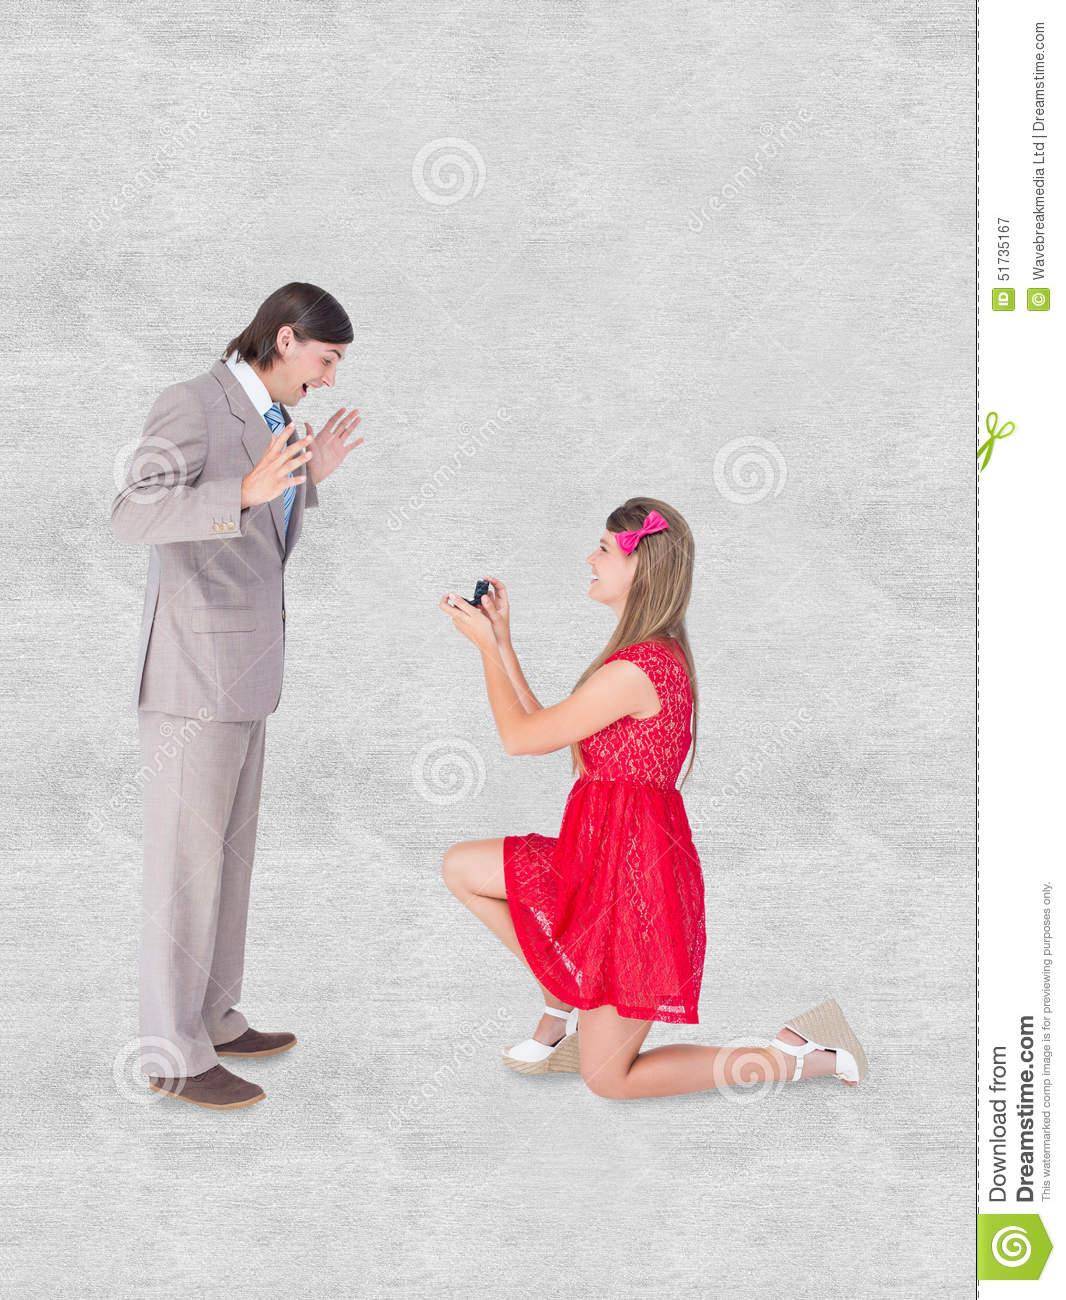 A Composite Image Of Pretty Hipster On Bended Knee Doing A